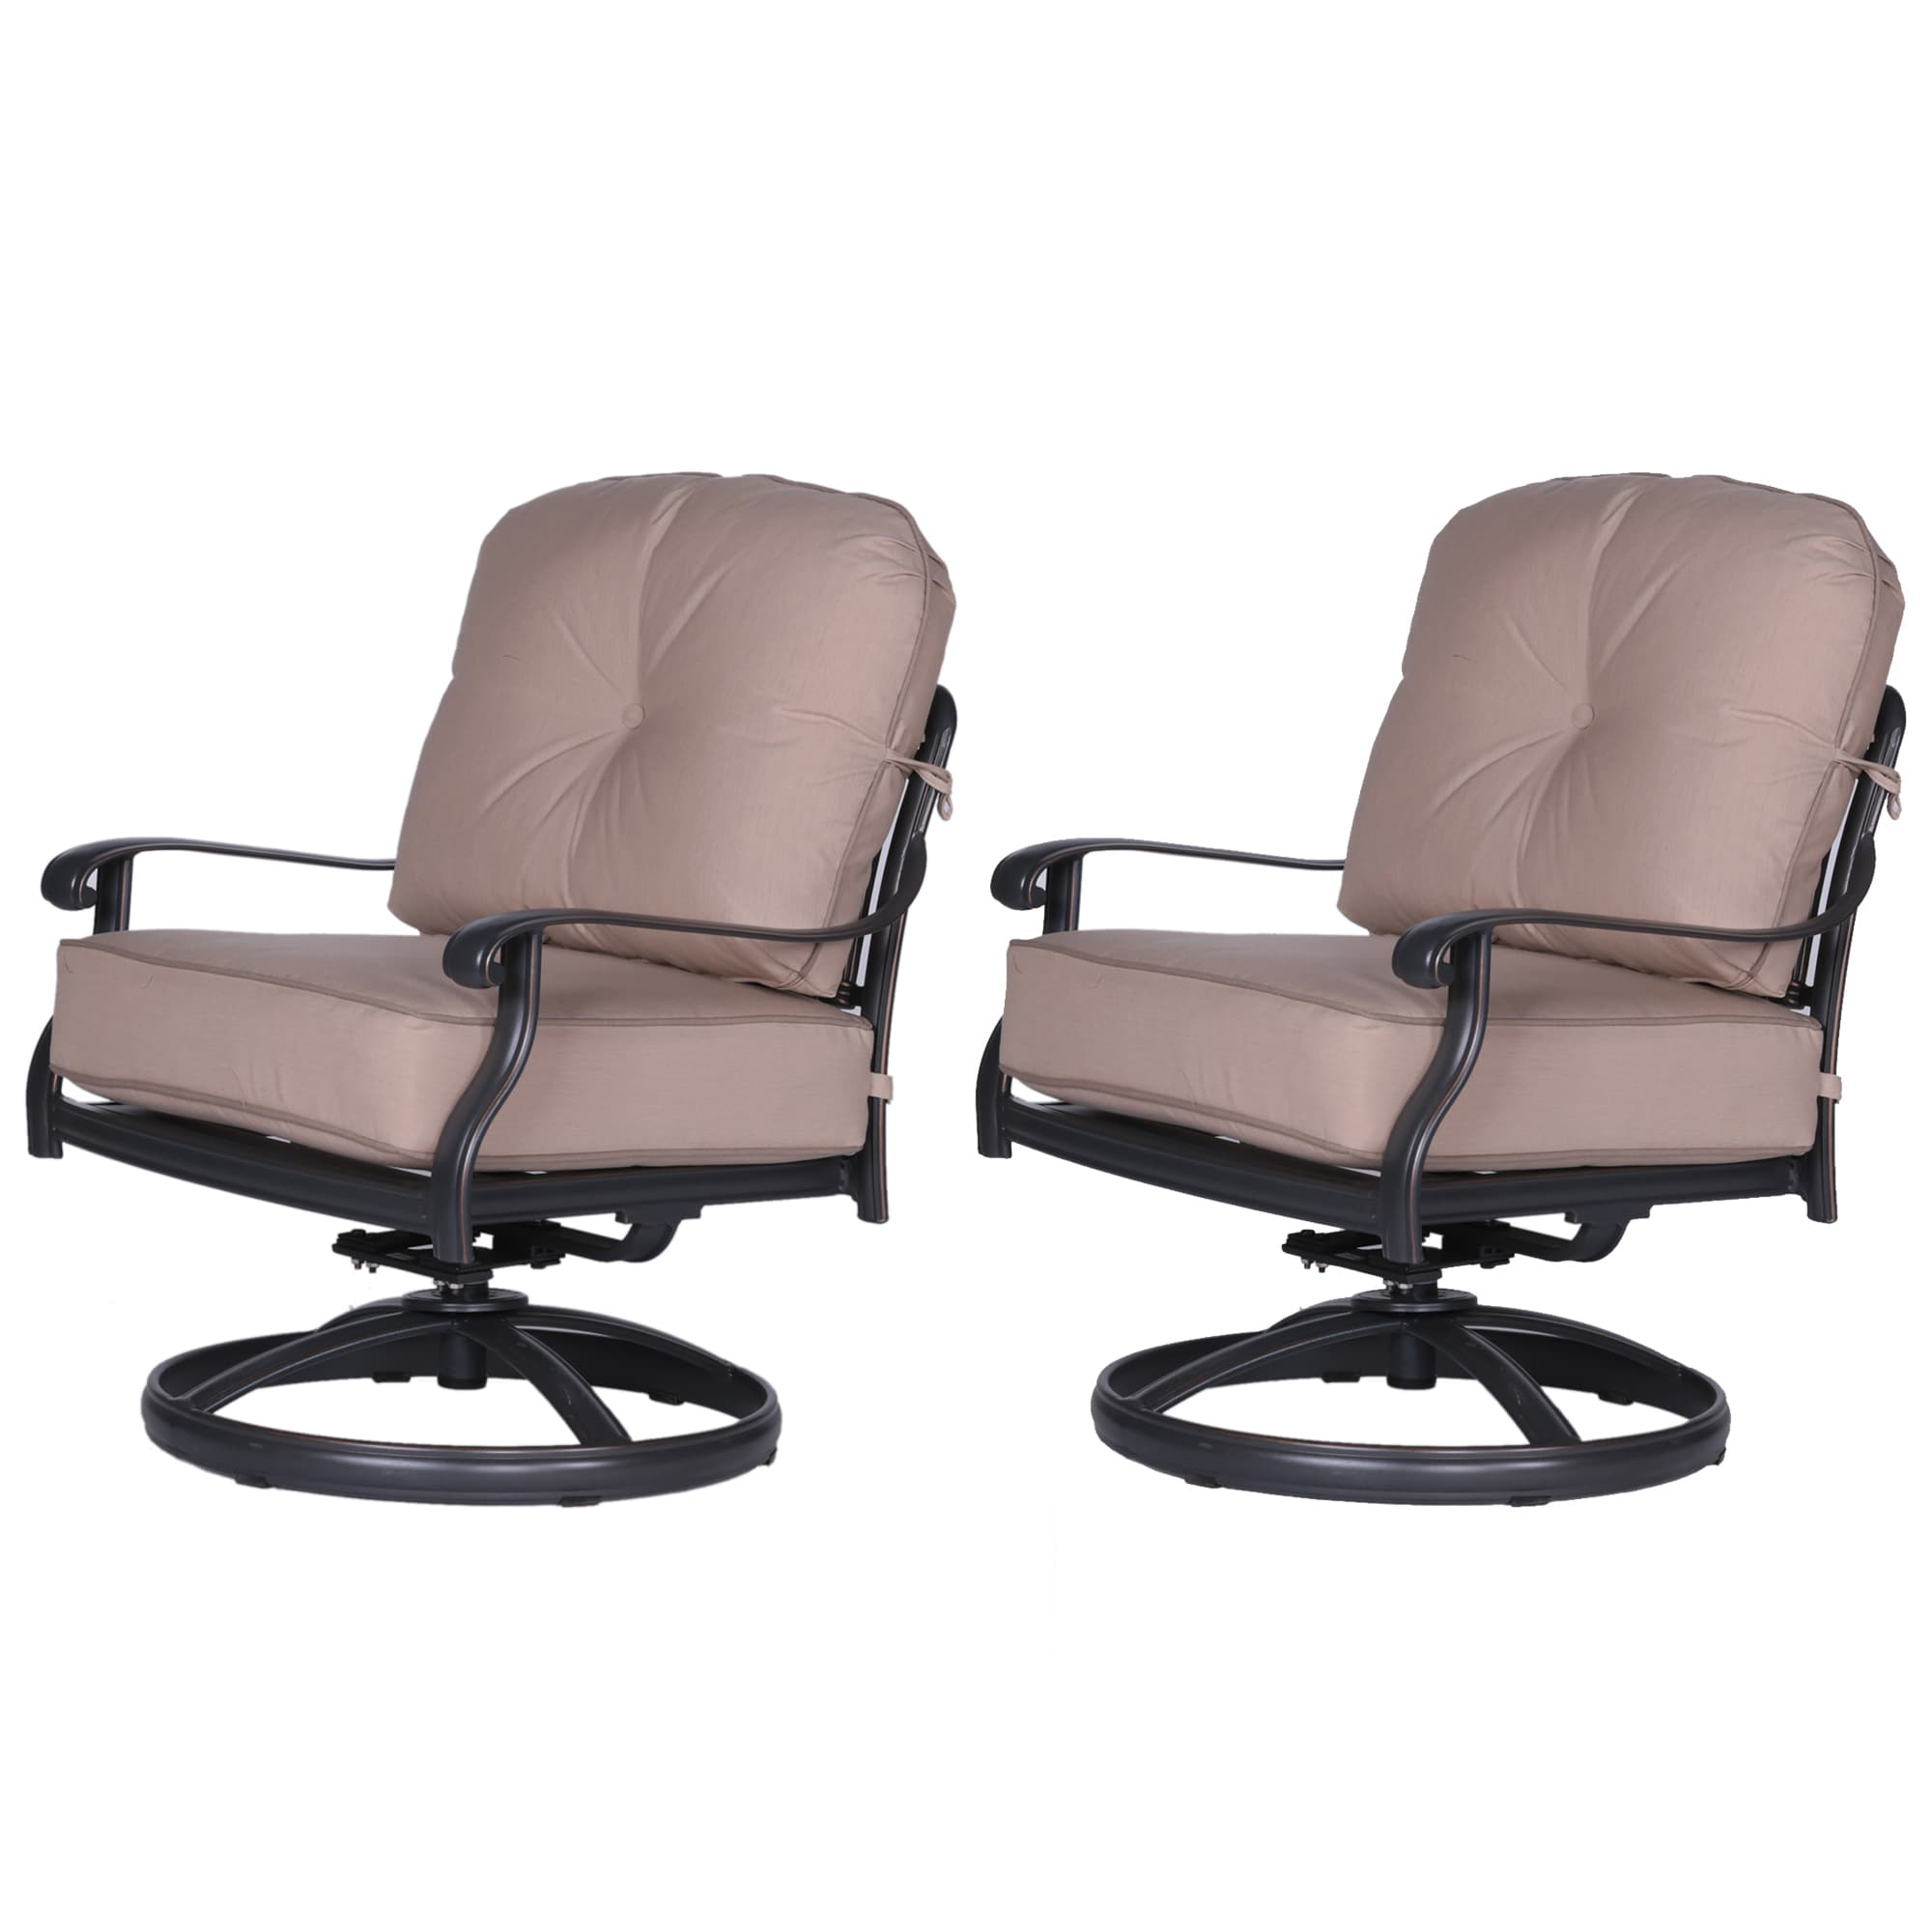 Gracewood Hollow Budi Club Black Aluminum Swivel Chairs With Beige  Sunbrella Cushions (Set Of 2)   Free Shipping Today   Overstock   23885447